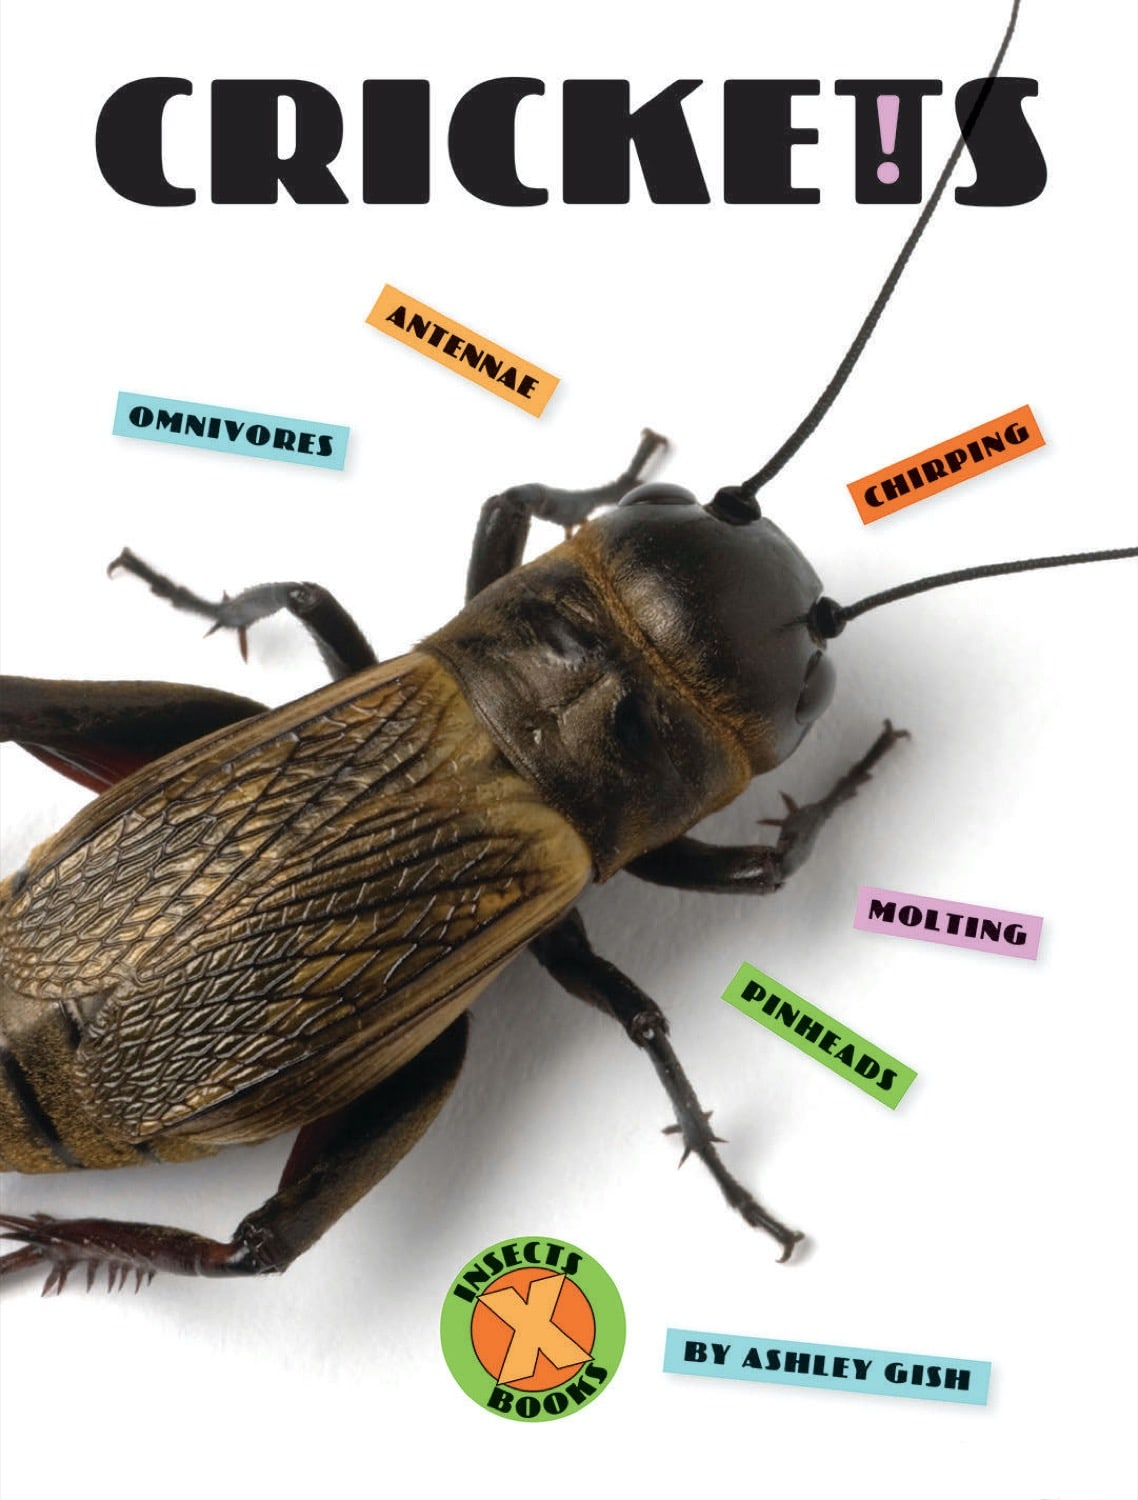 X-Books: Insects: Crickets